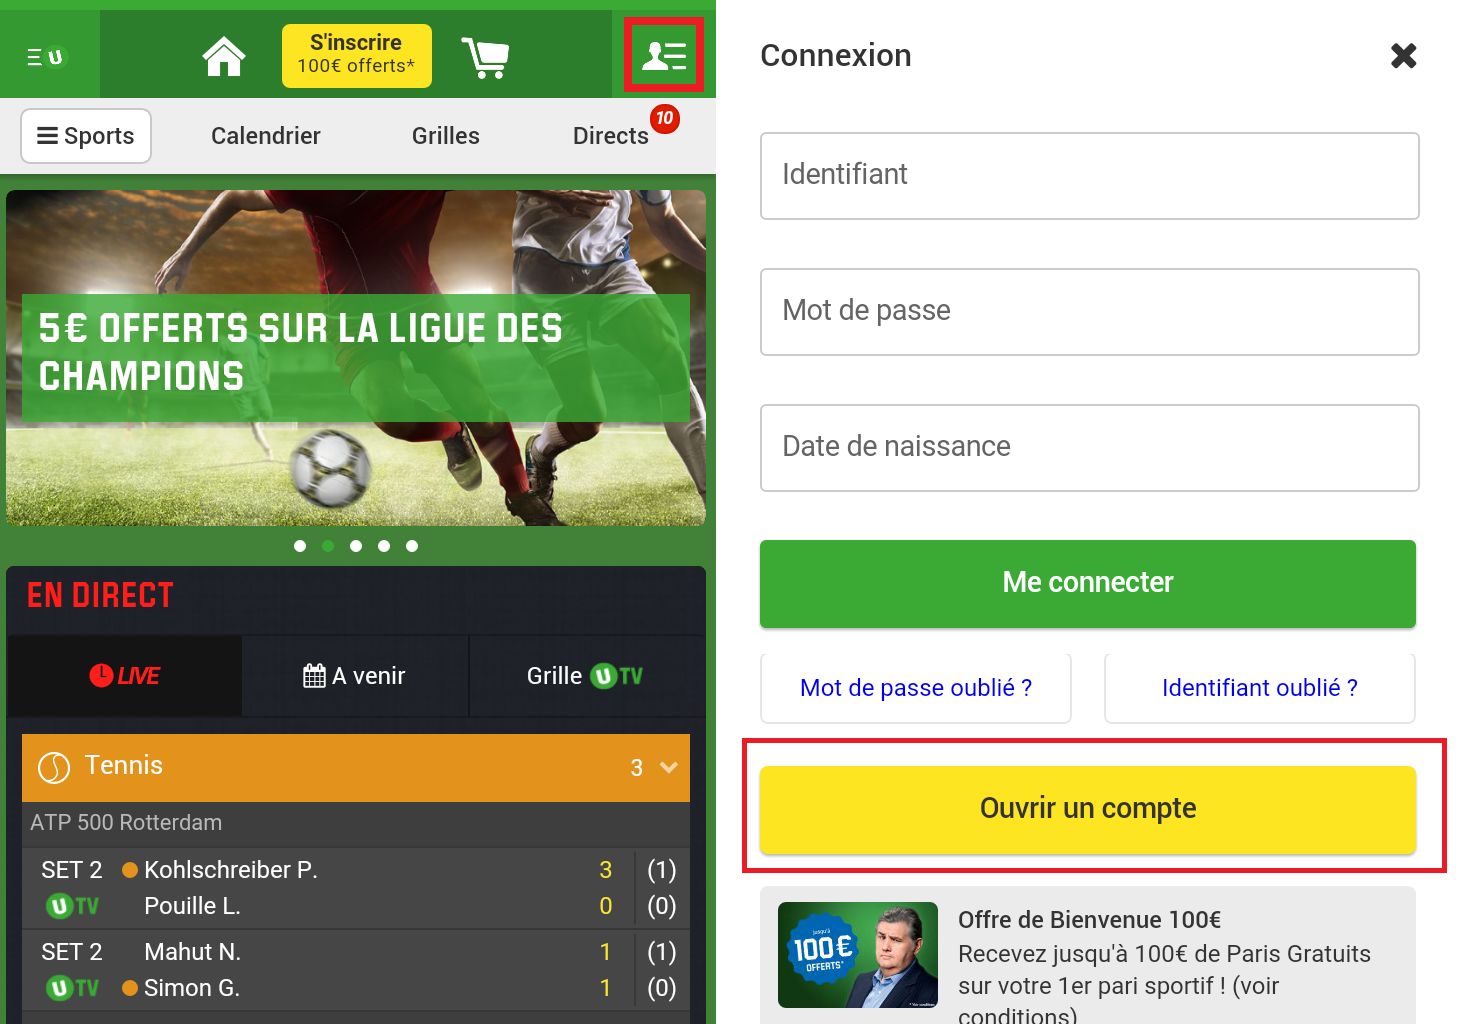 Inscription sur unibet.fr - etape 1